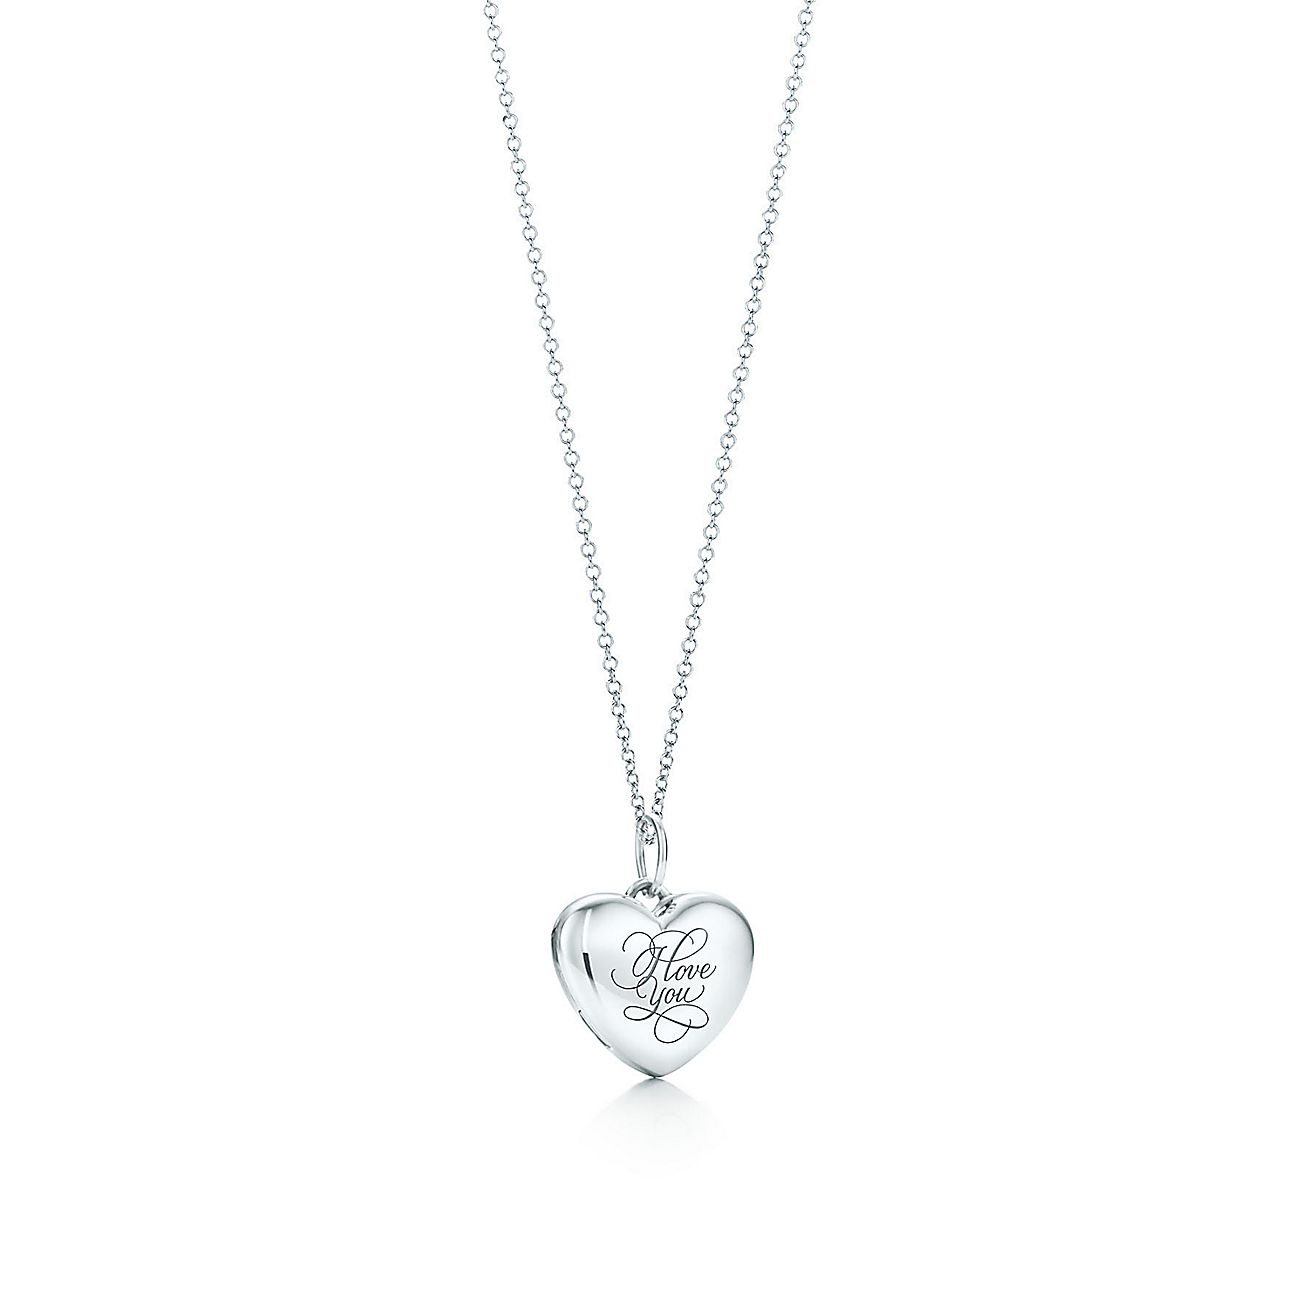 """I Love You"" heart locket pendant"